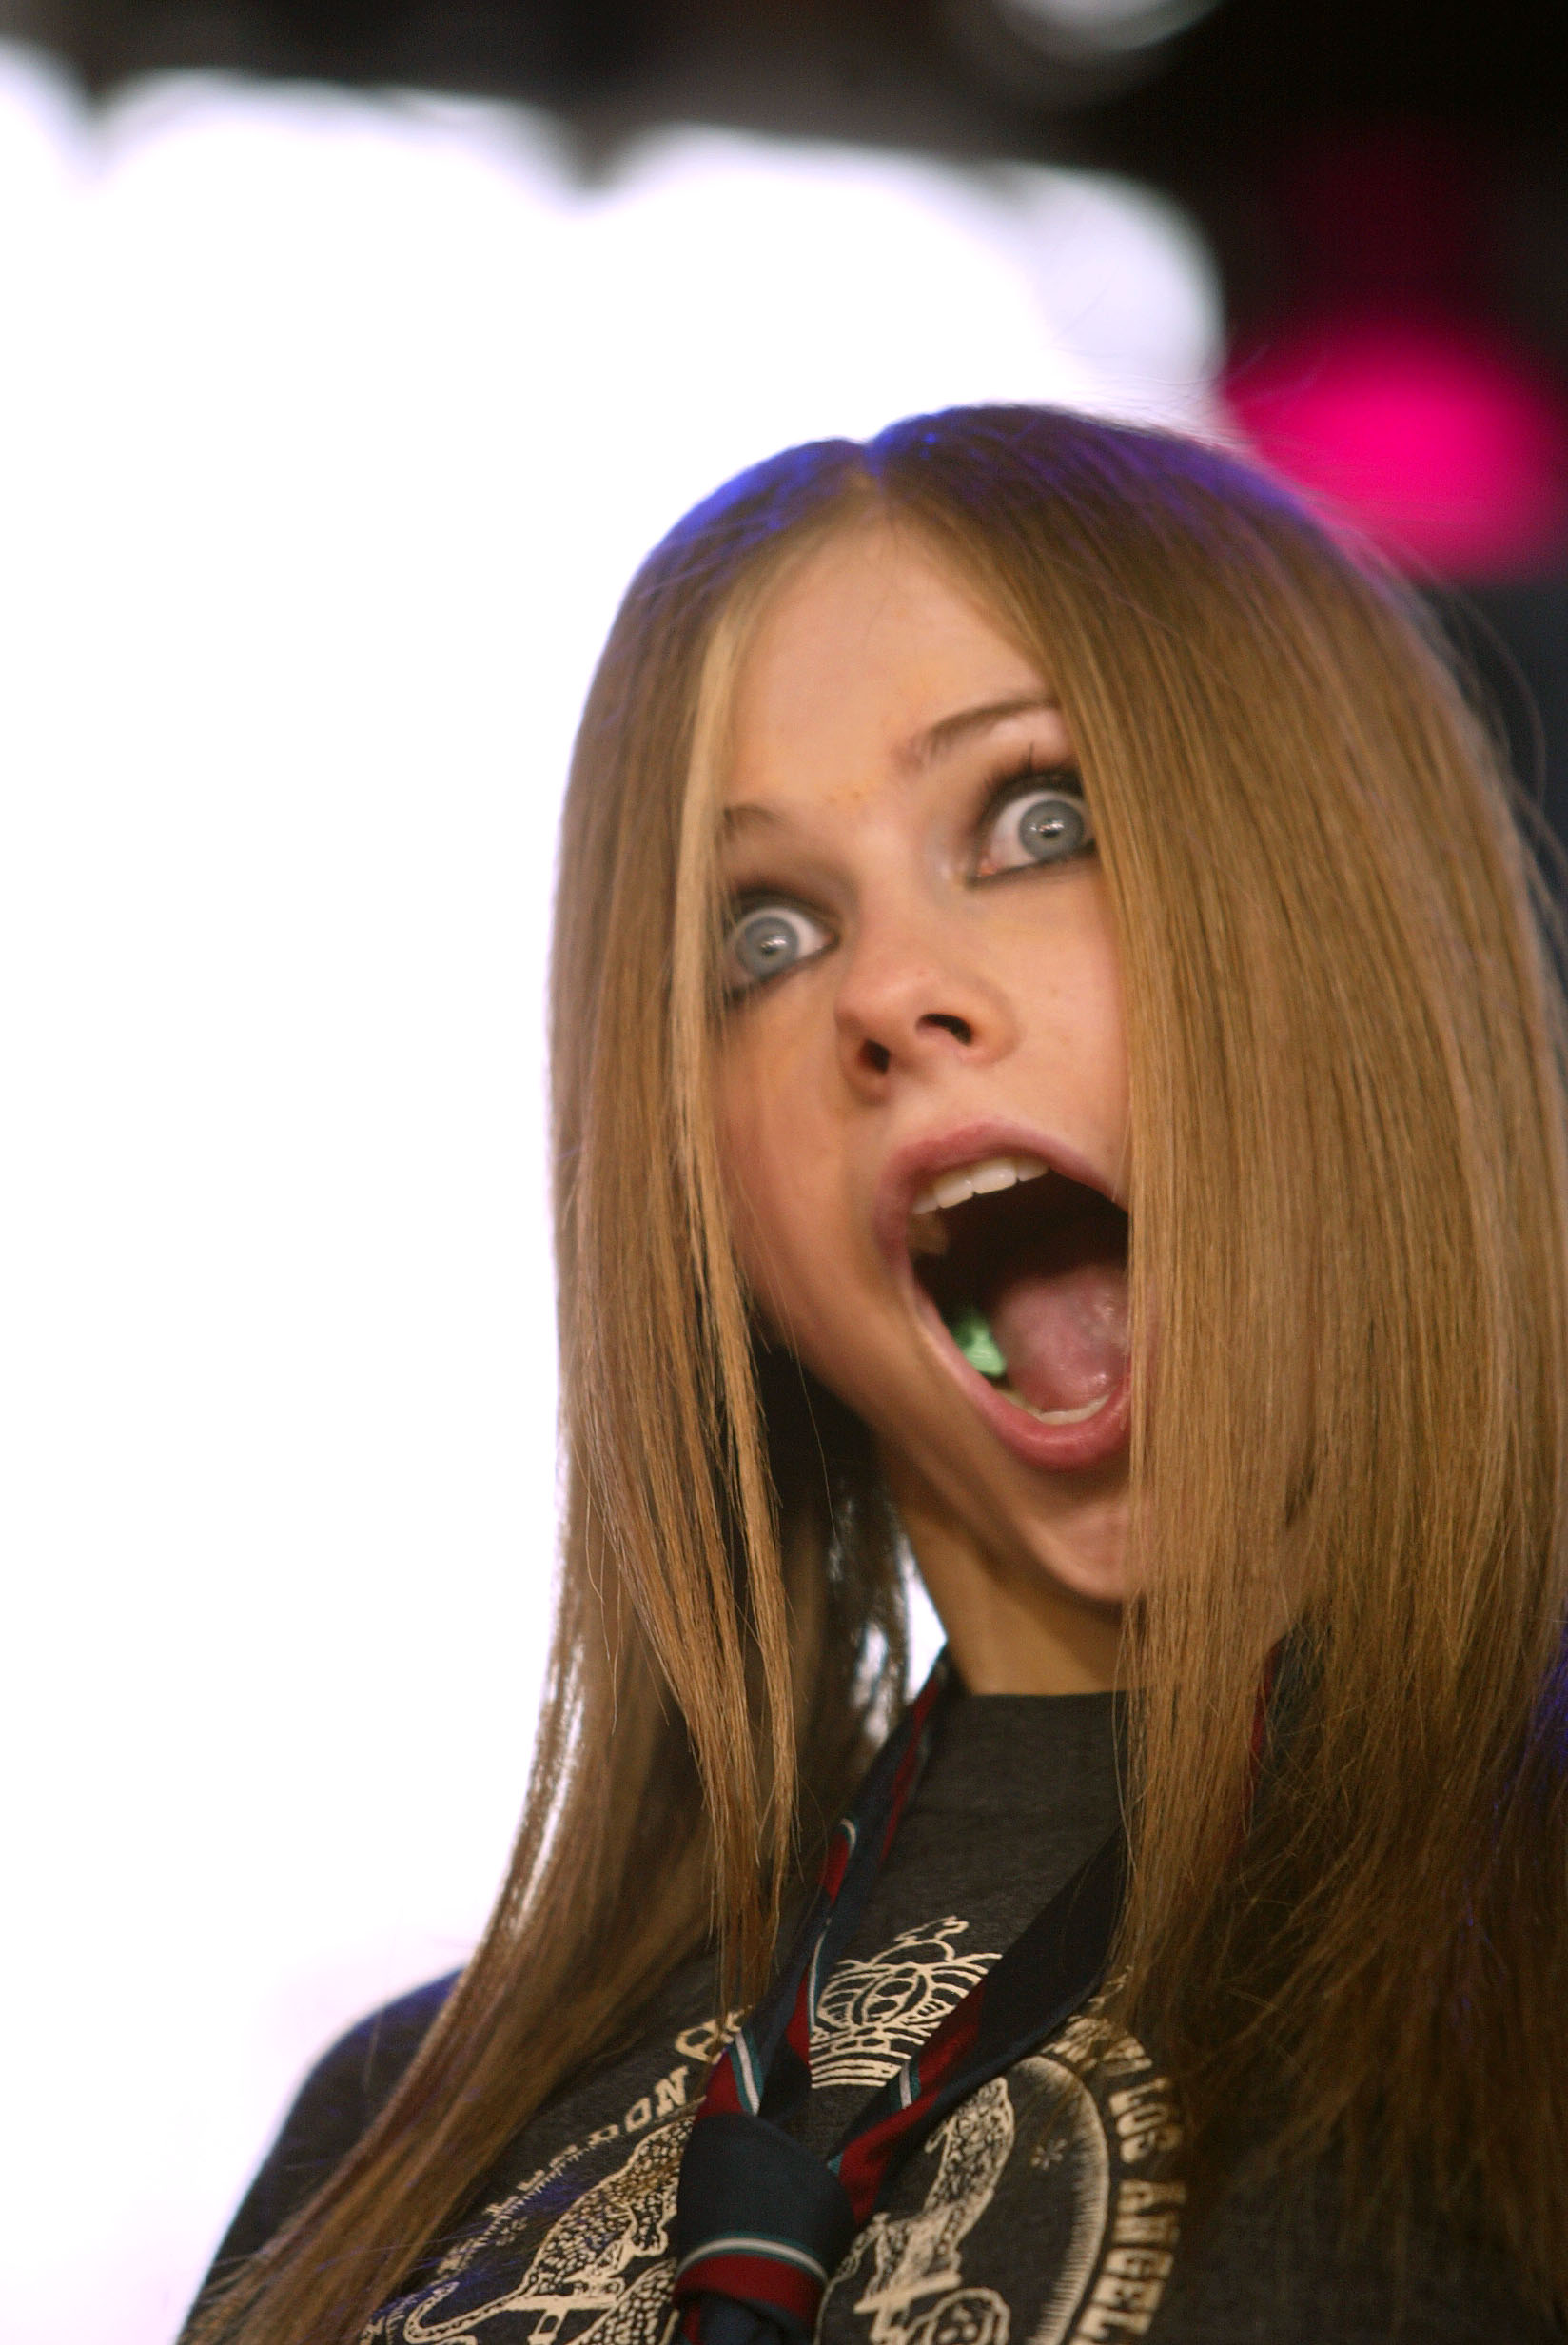 who was avril lavigne dating in 2002 Evan david taubenfeld (born june 27, 1983) is an american singer-songwriter, best known for being avril lavigne's lead guitarist, music director and frequent collaborator.